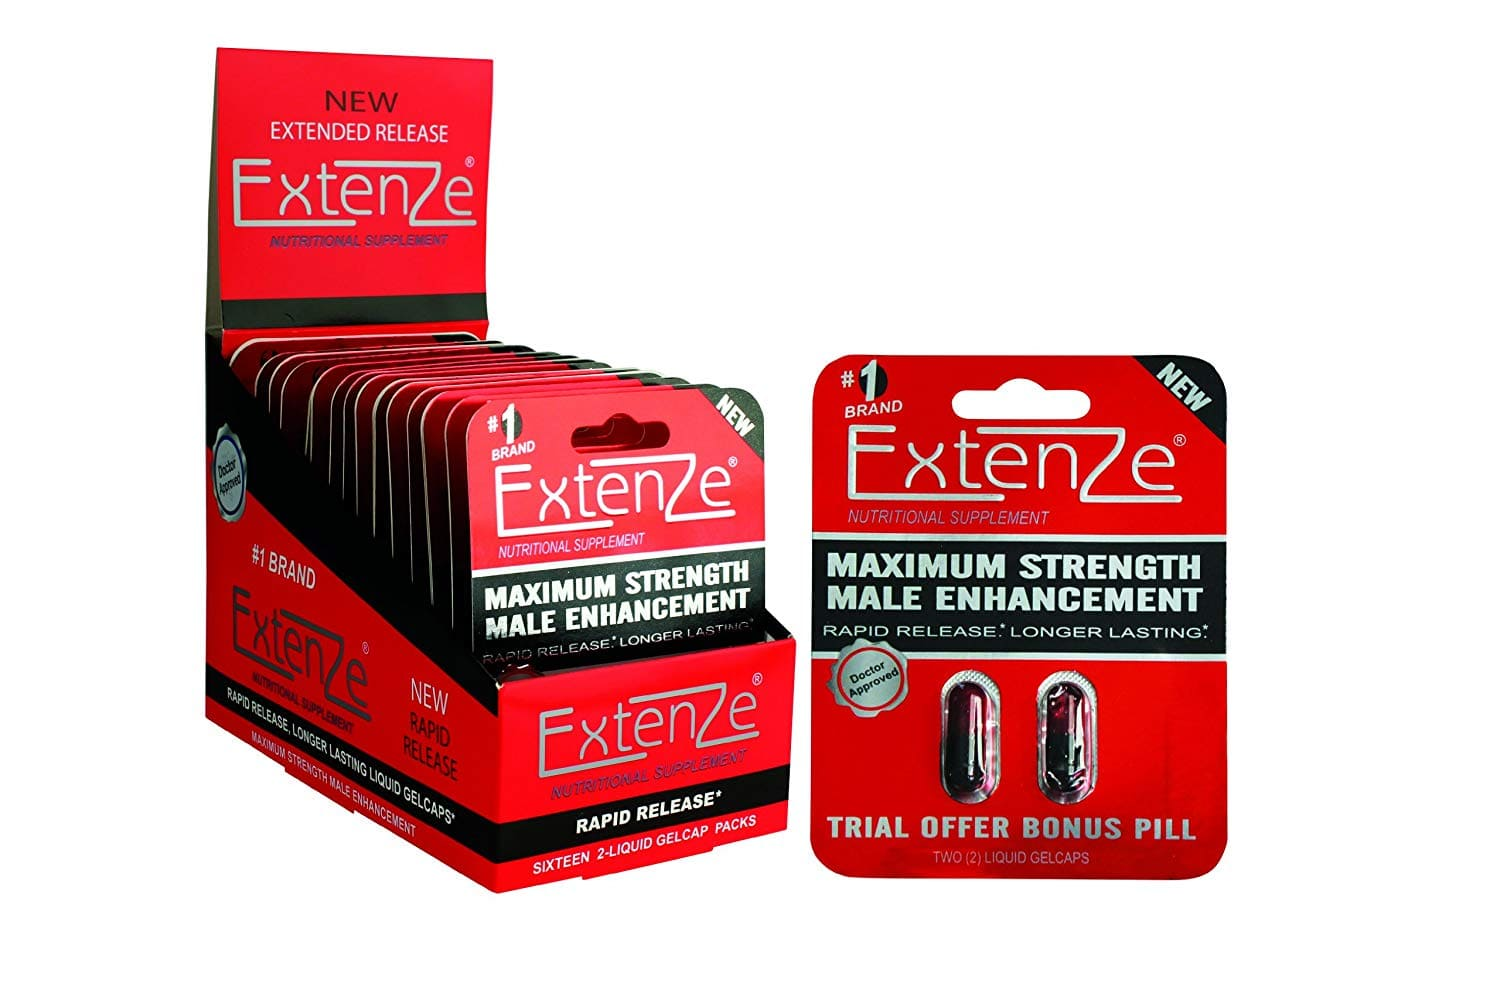 coupon printable code Extenze  2020